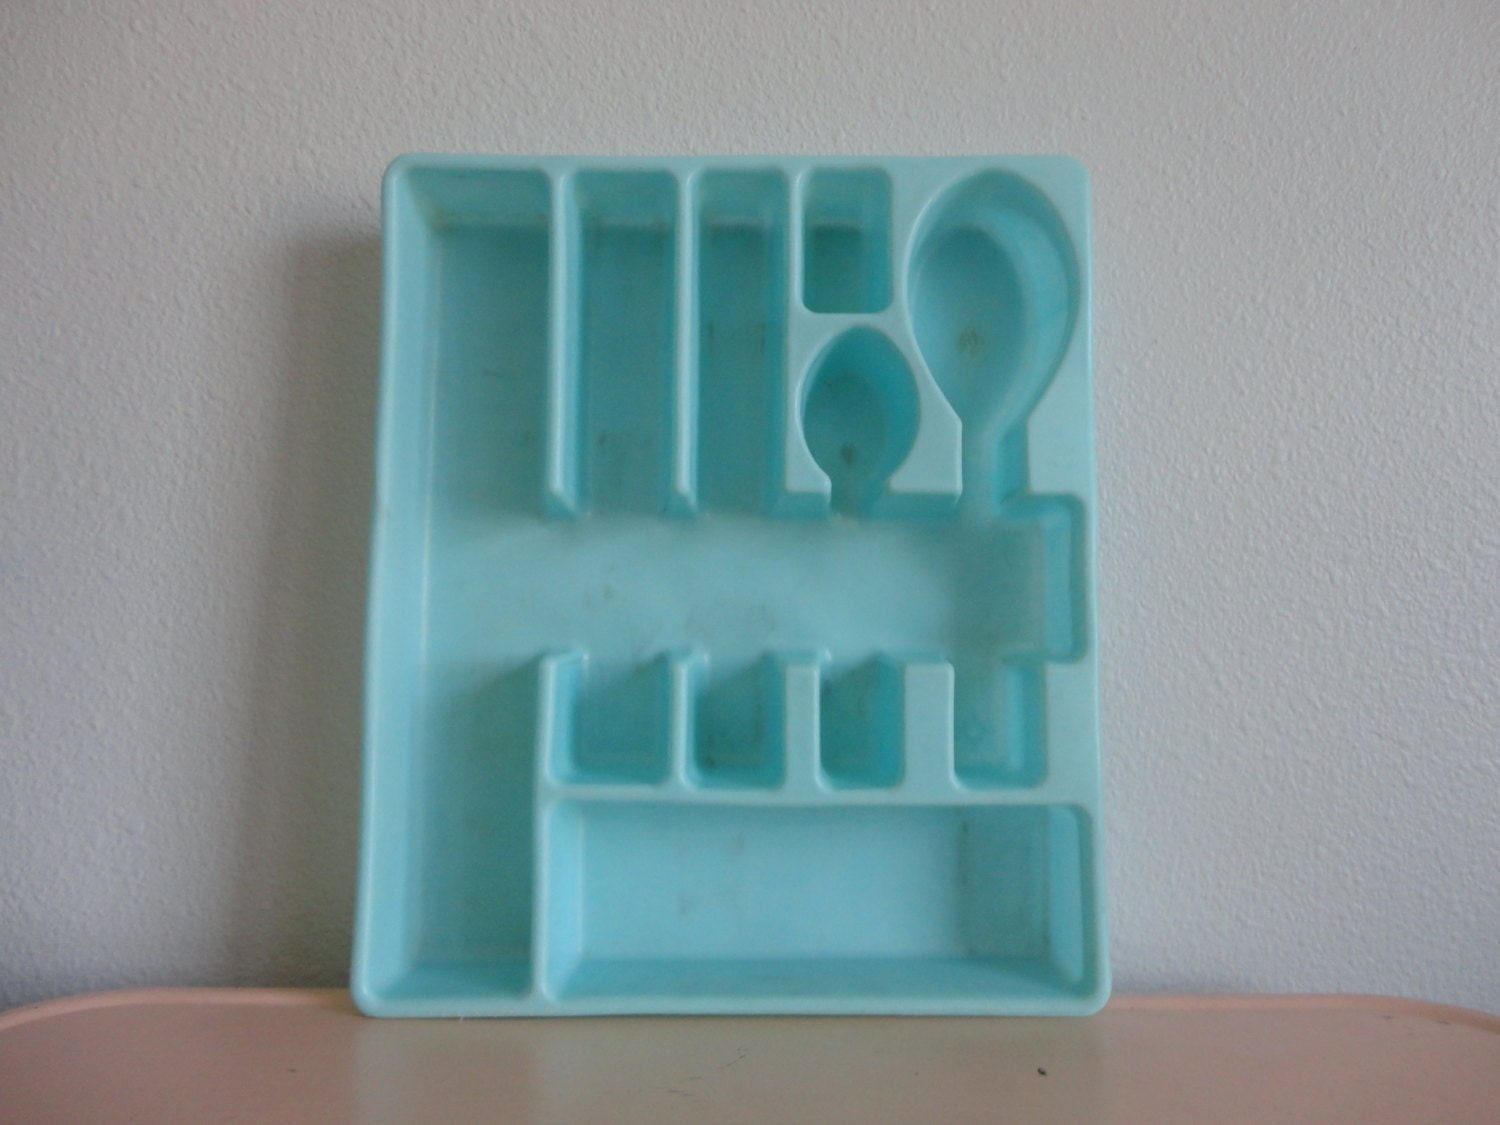 Popular items for flatware storage on Etsy